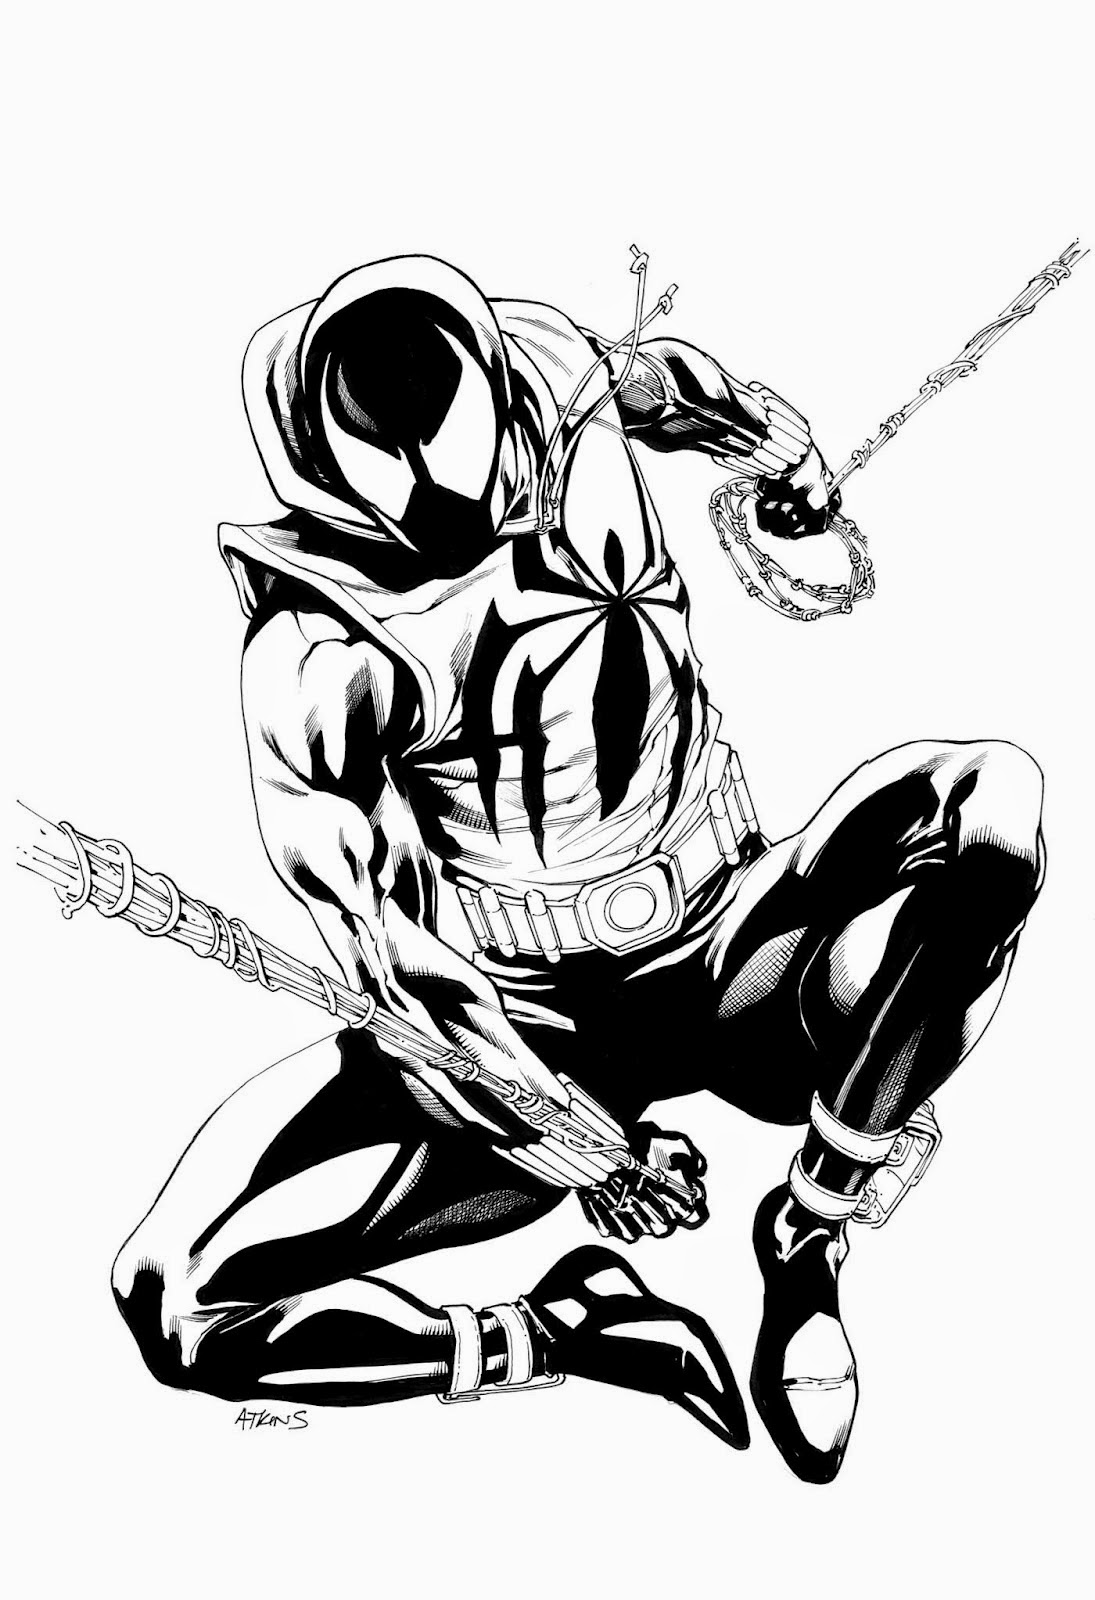 1095x1600 My Useless Art Scarlet Spider Man Drawing